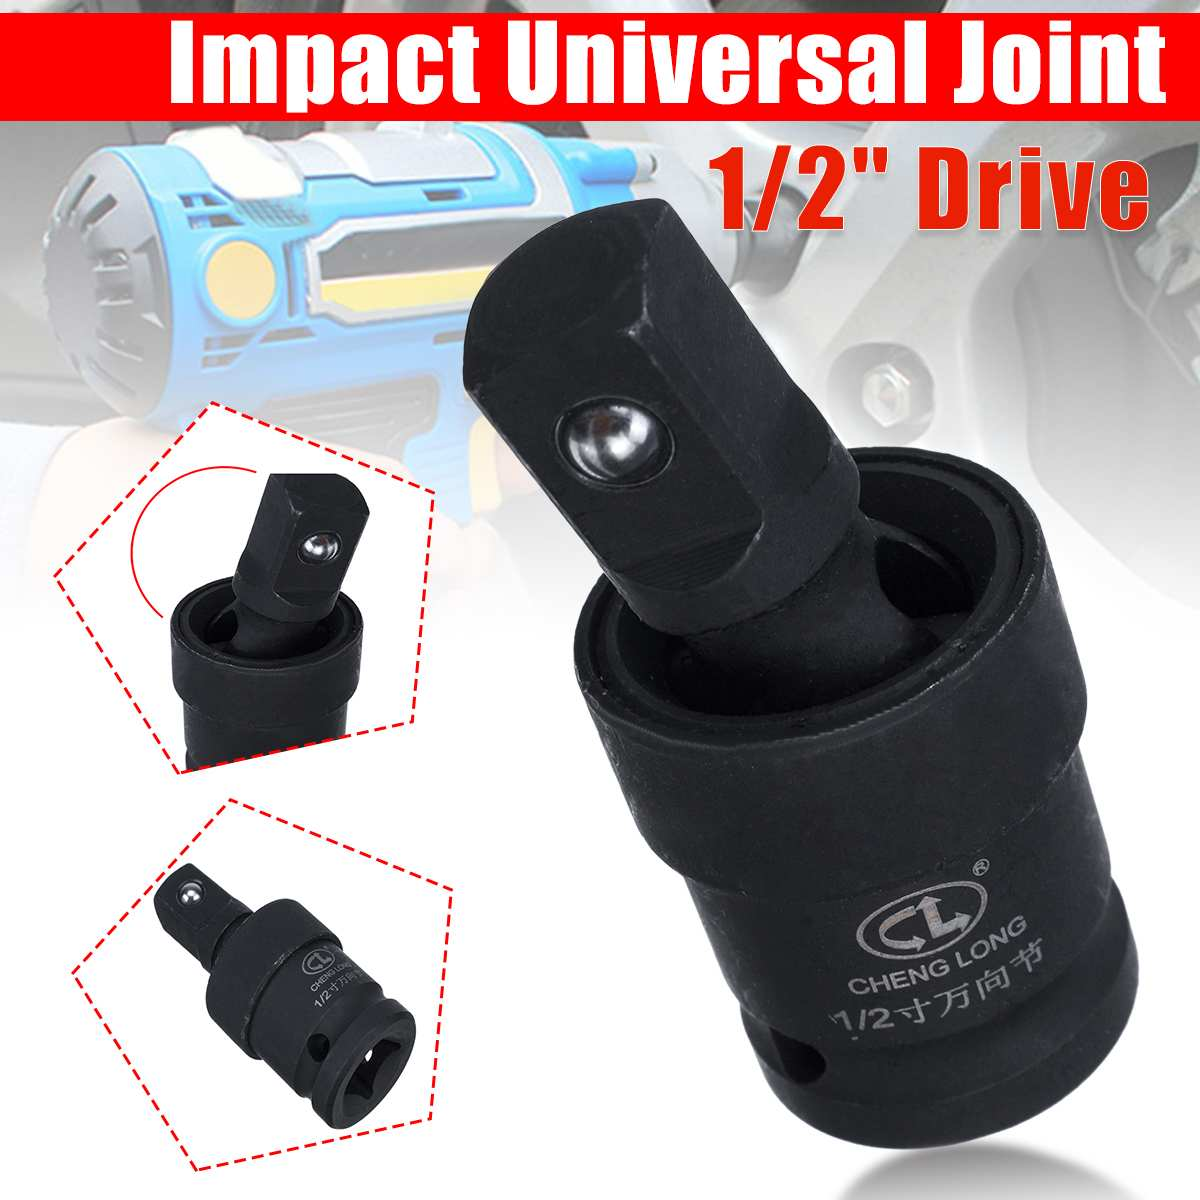 274100P 1 2 Inch Drive Universal Joint Swivel Wobble Socket Impact Extension Adapter